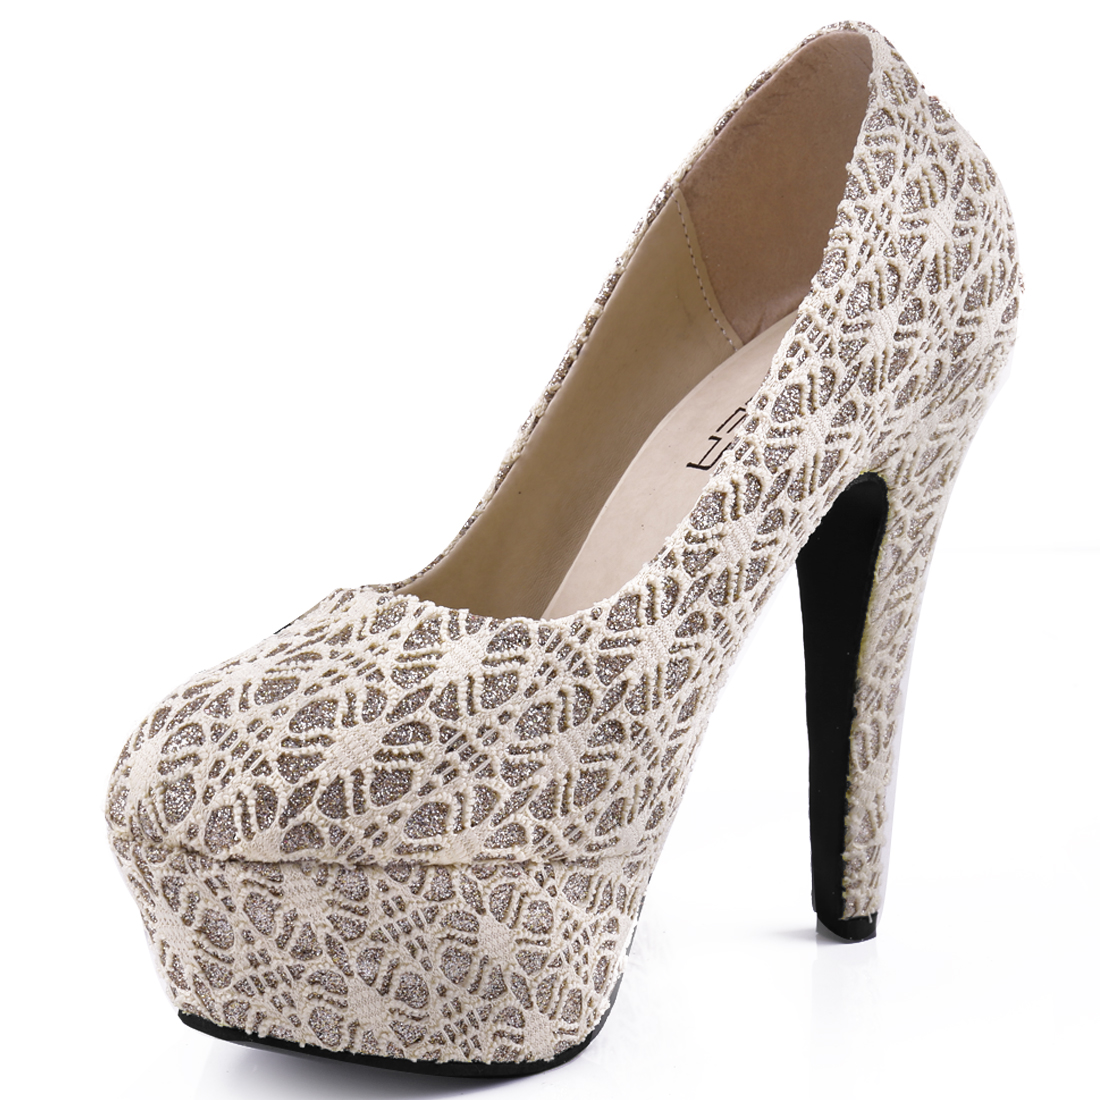 Woman Chic Round Toe Crochet Flower Vamp Design Beige Platform Pumps US 6.5